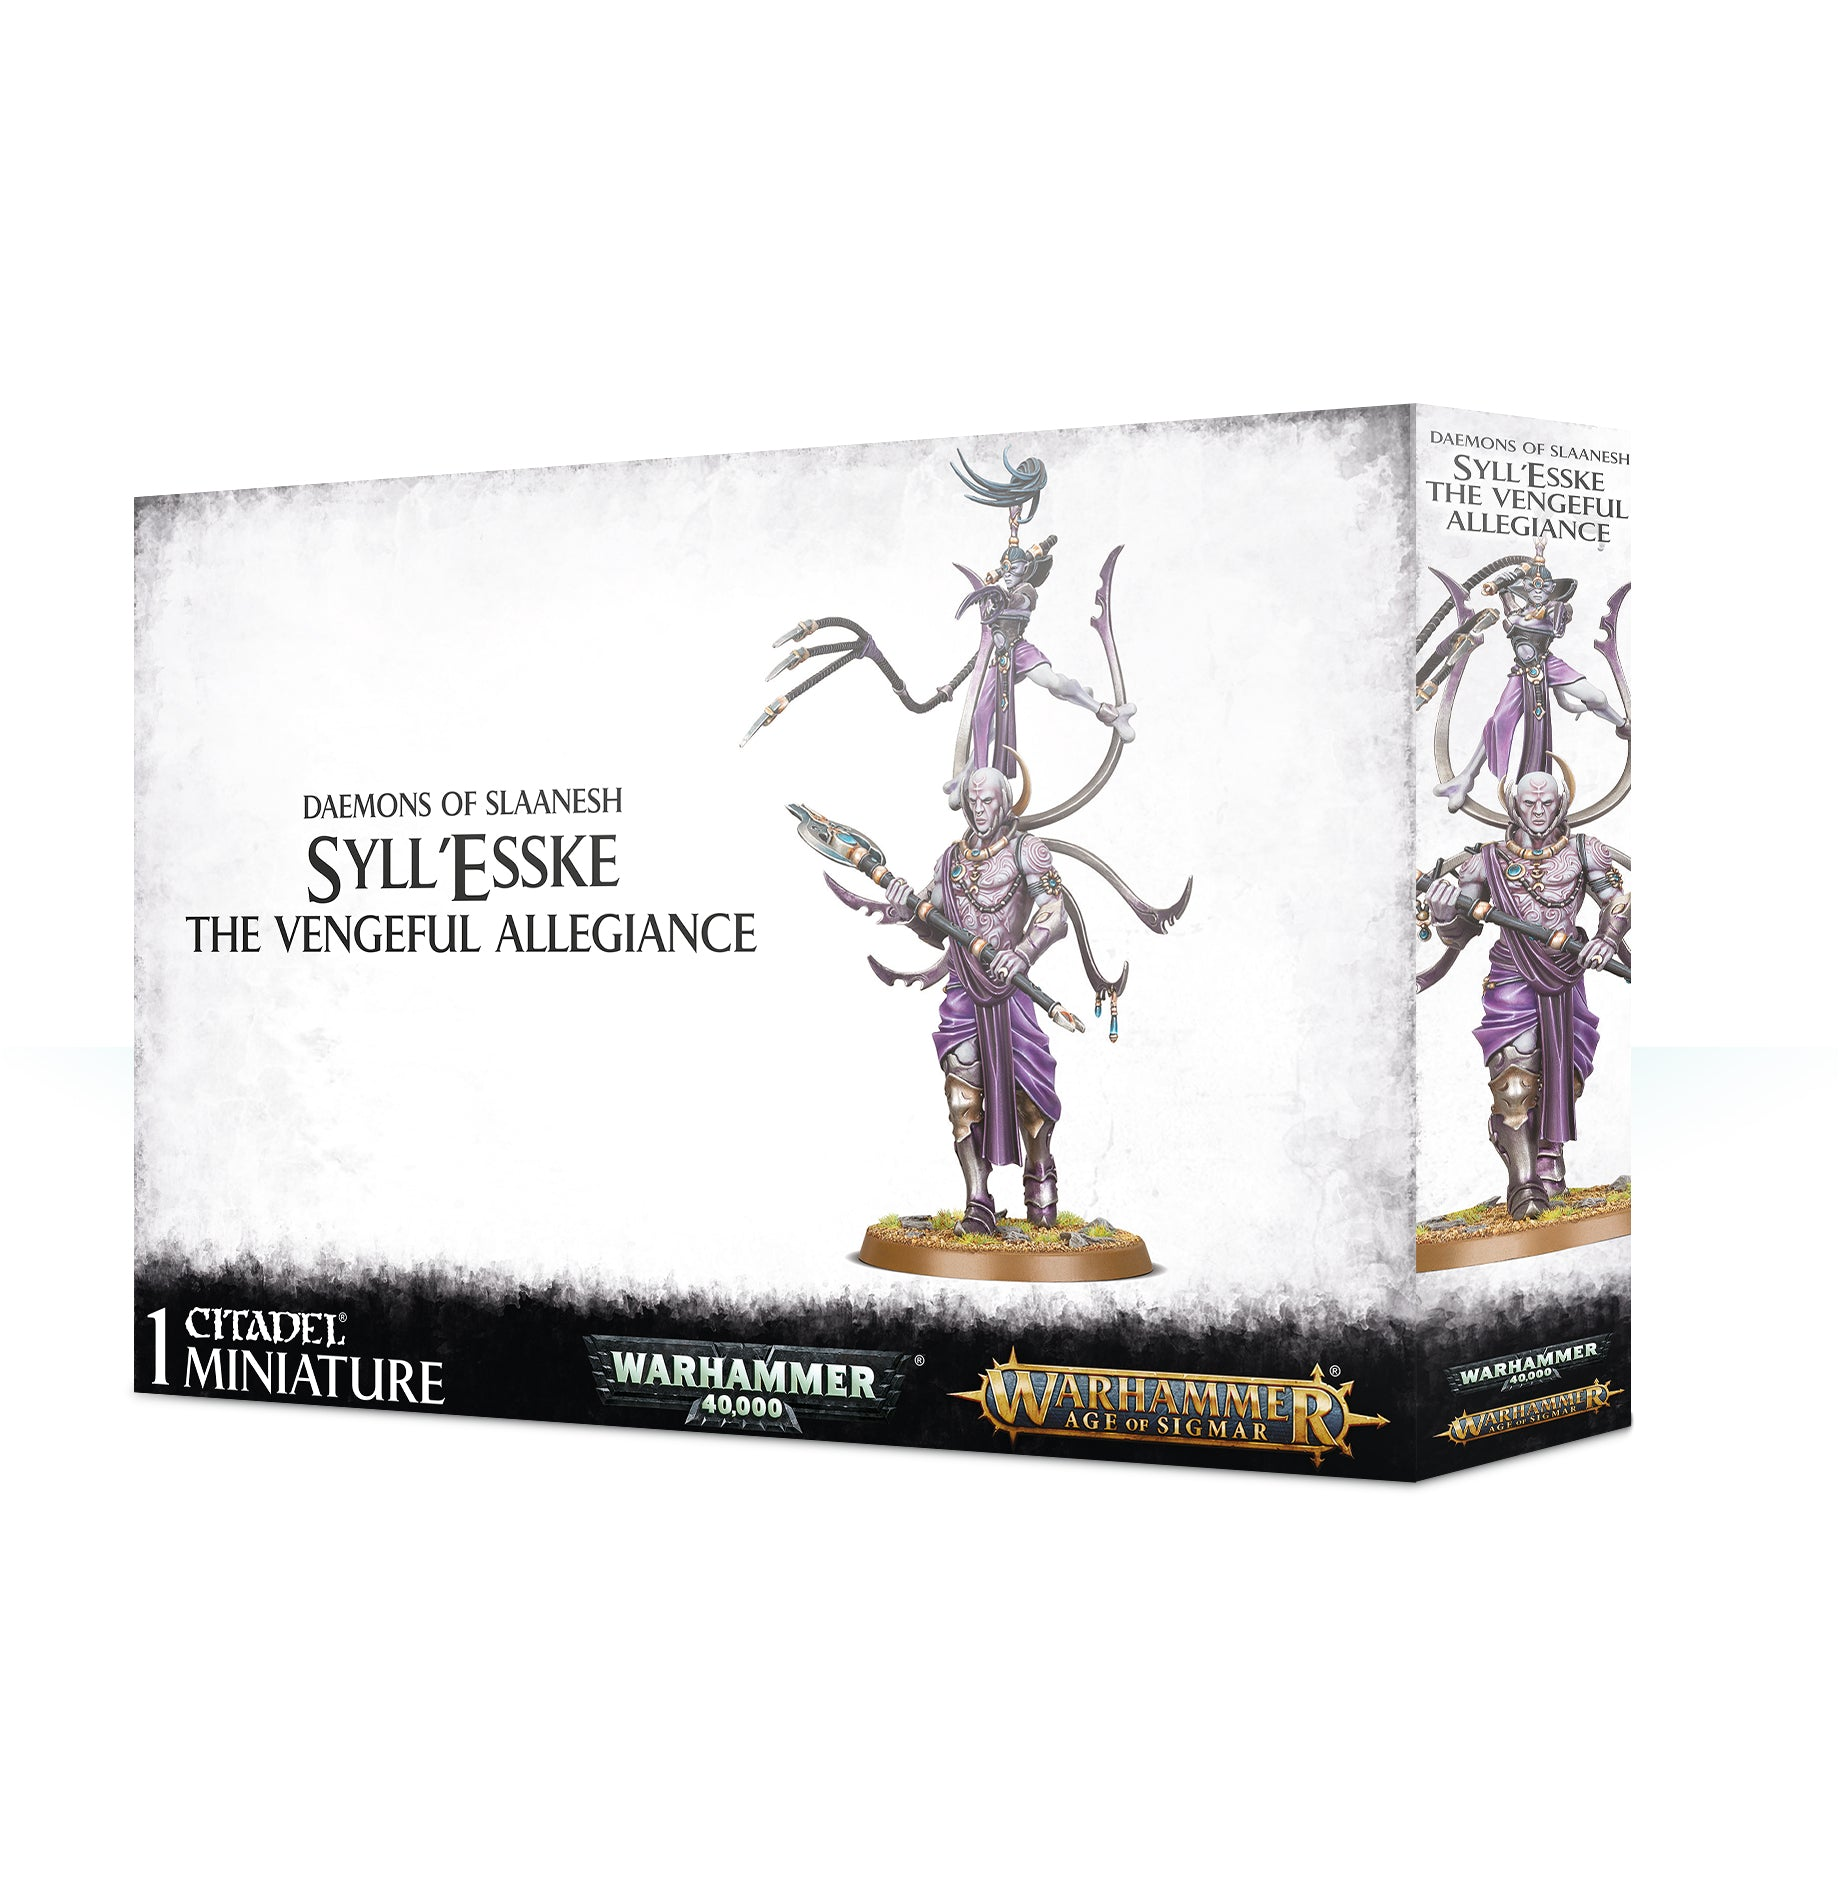 Daemons of Slaanesh Syll'Esske: The Vengeful Allegiance | Mythicos